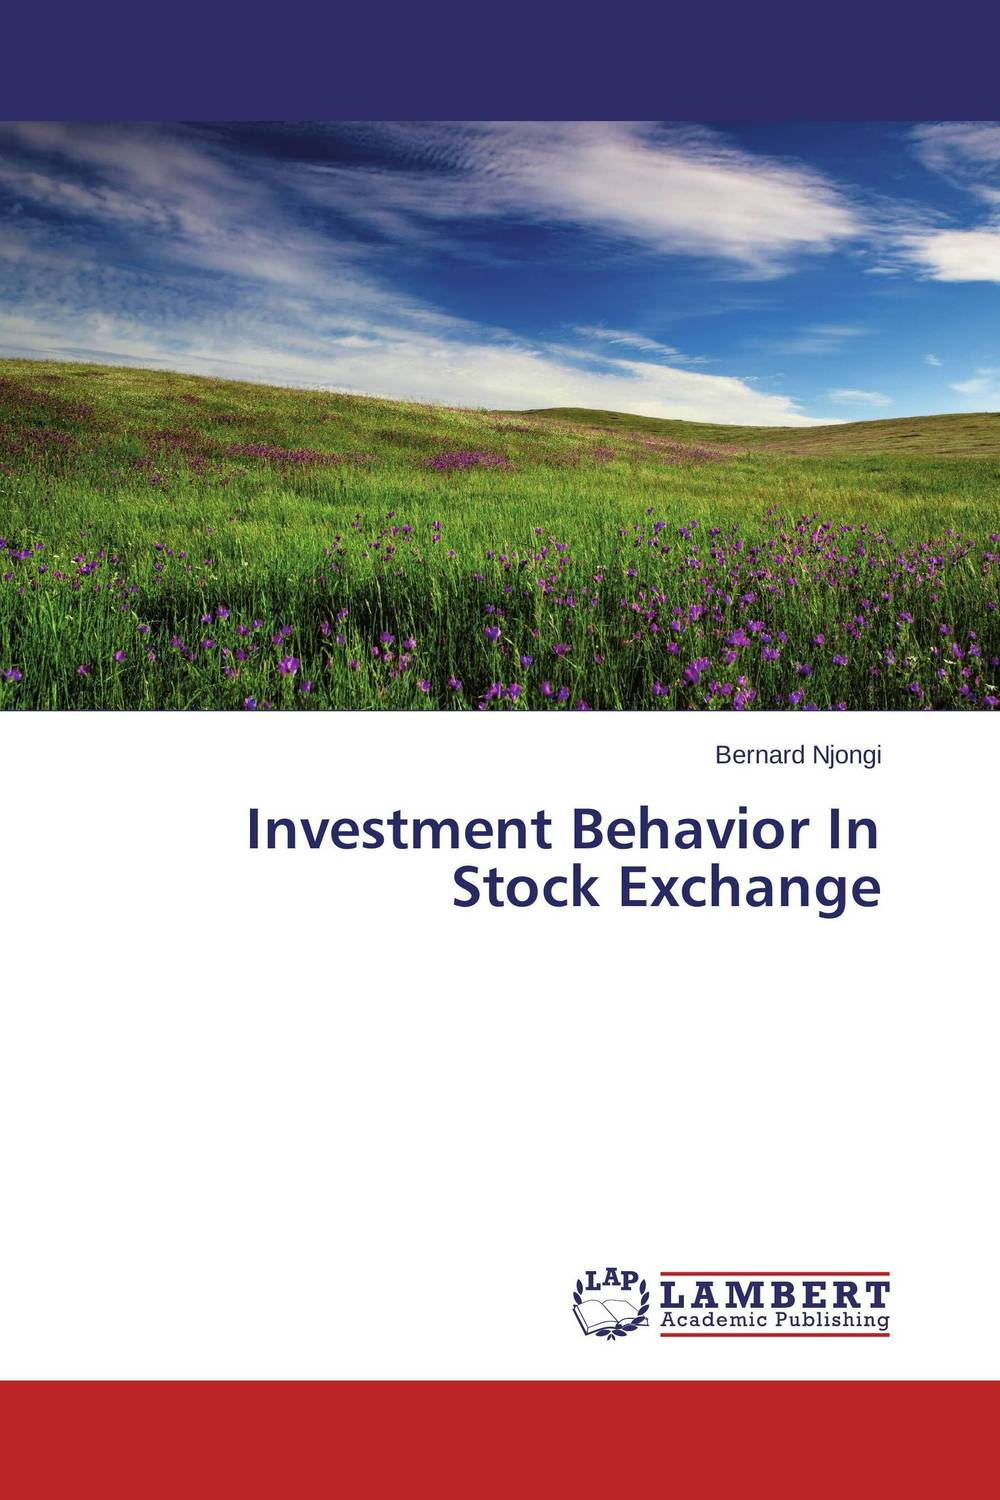 Investment Behavior In Stock Exchange aswath damodaran investment philosophies successful strategies and the investors who made them work